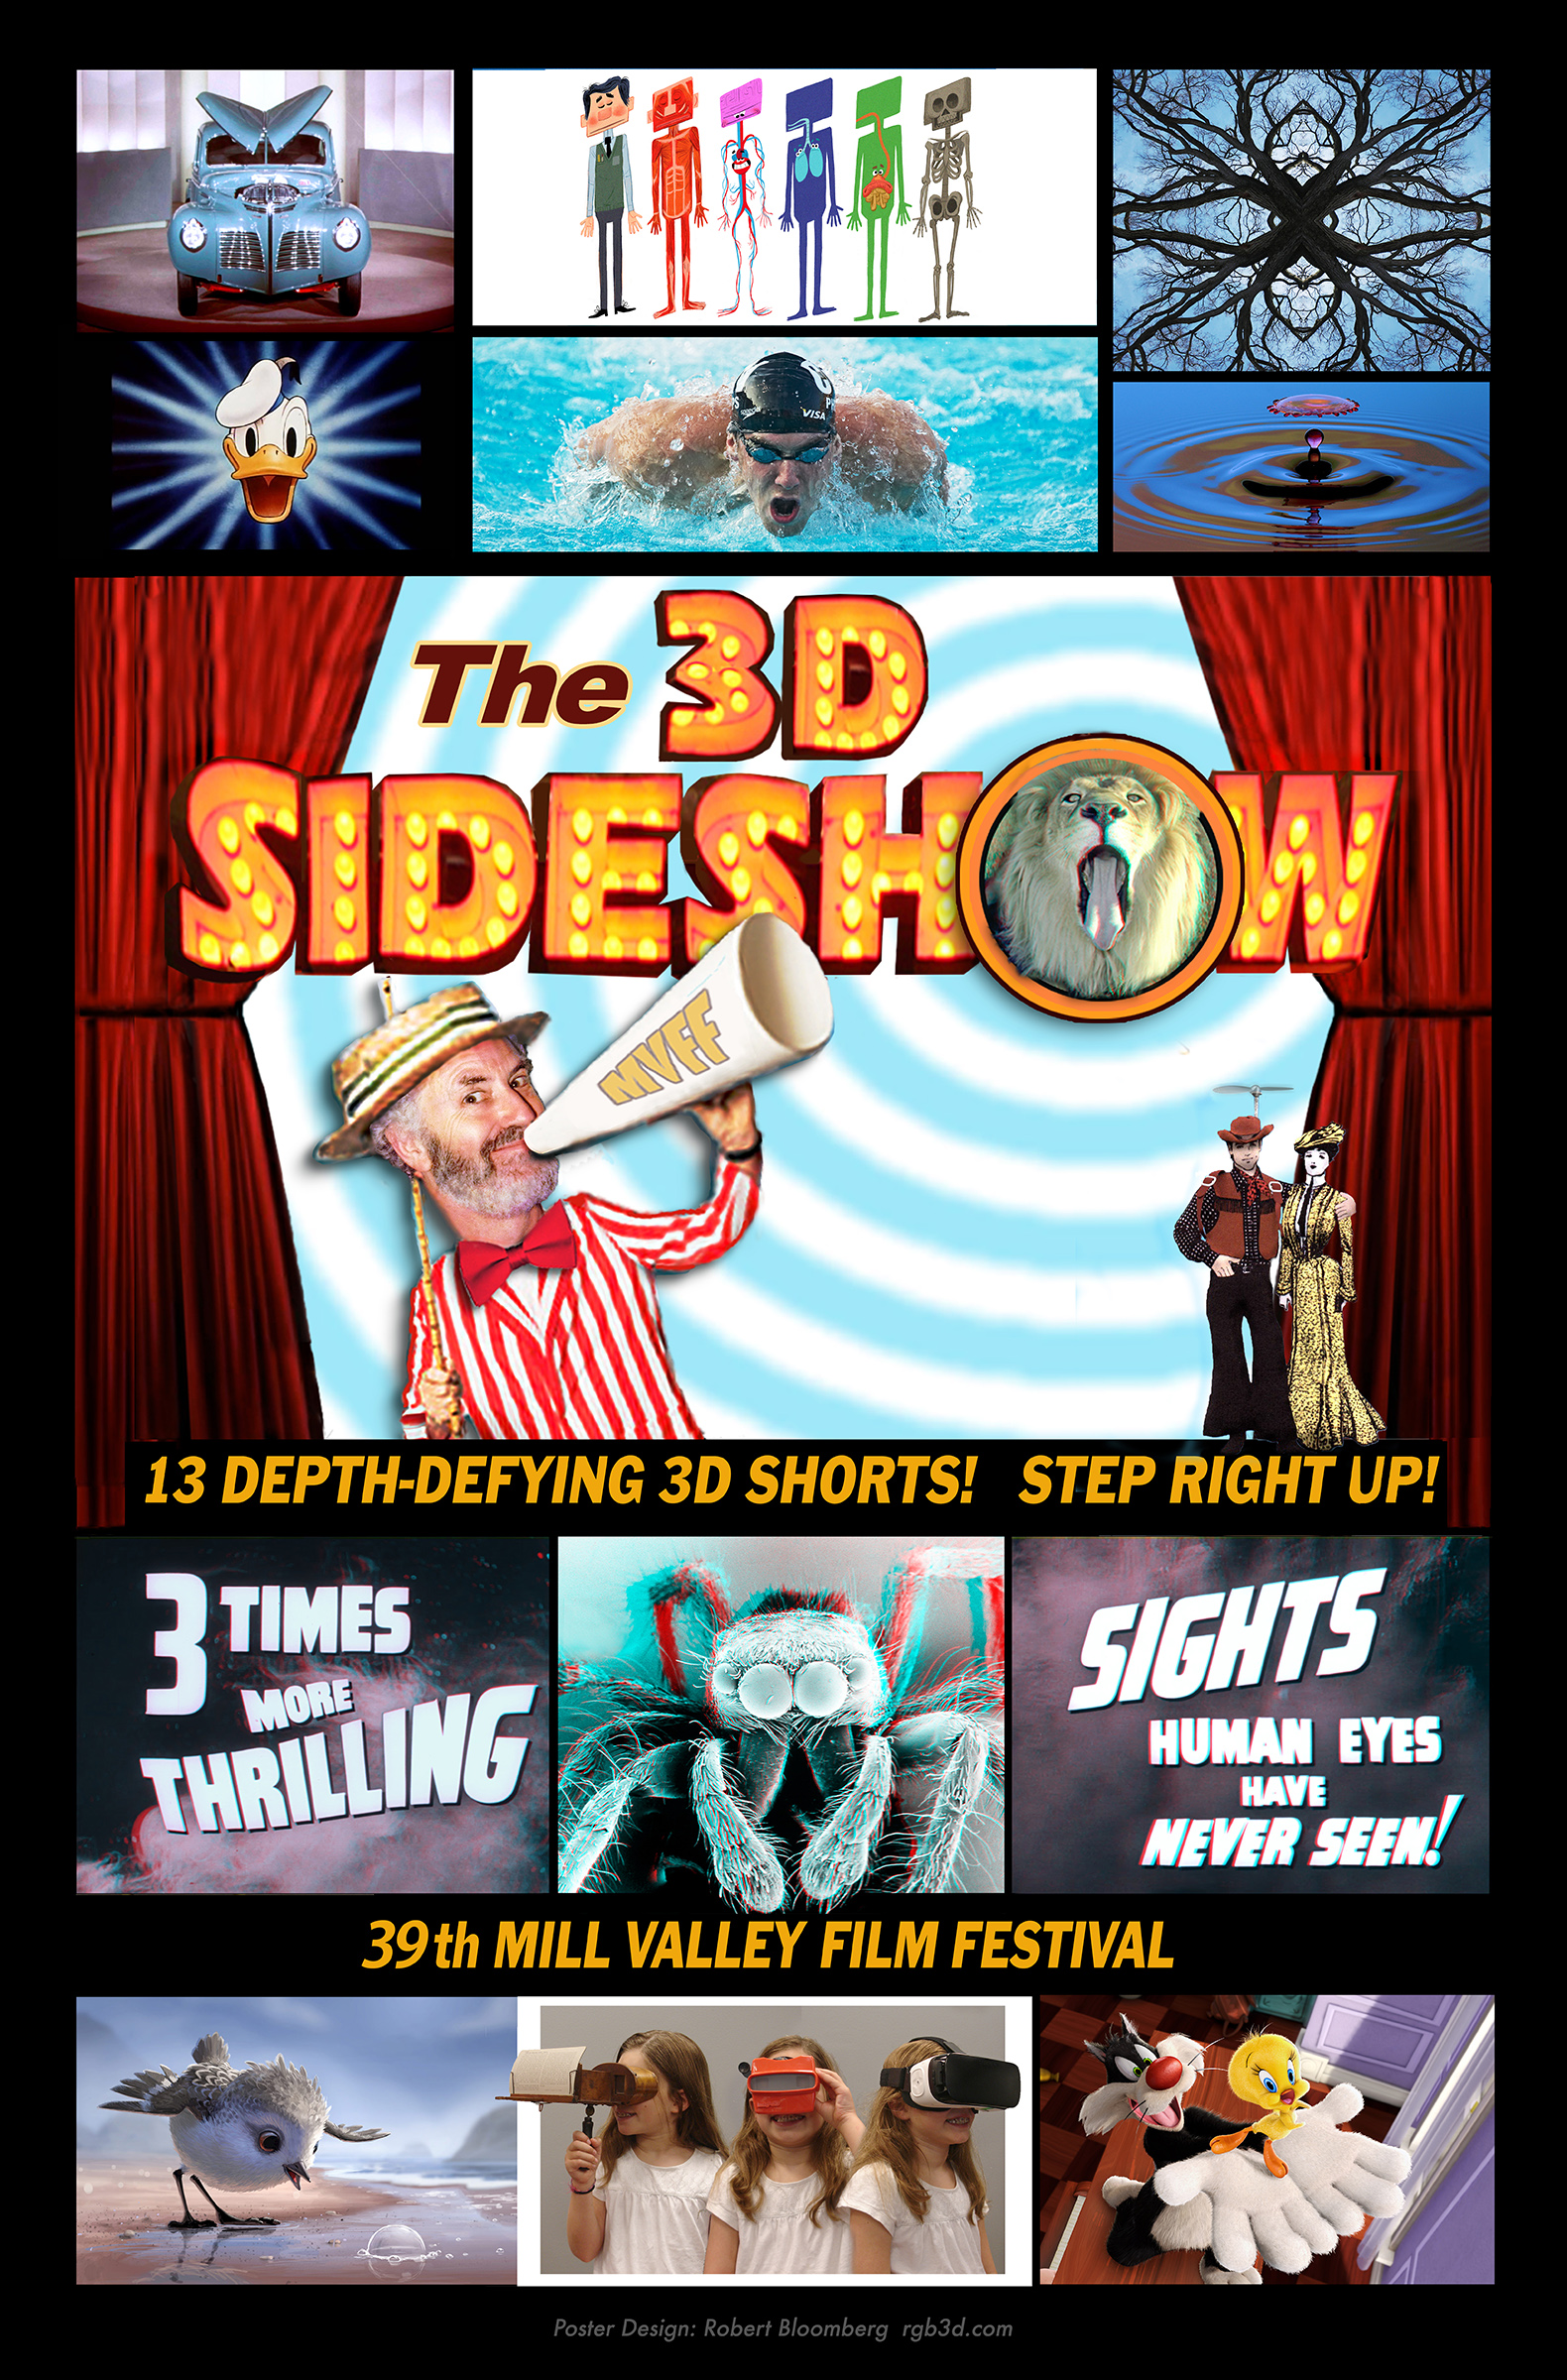 The 3D Sideshow